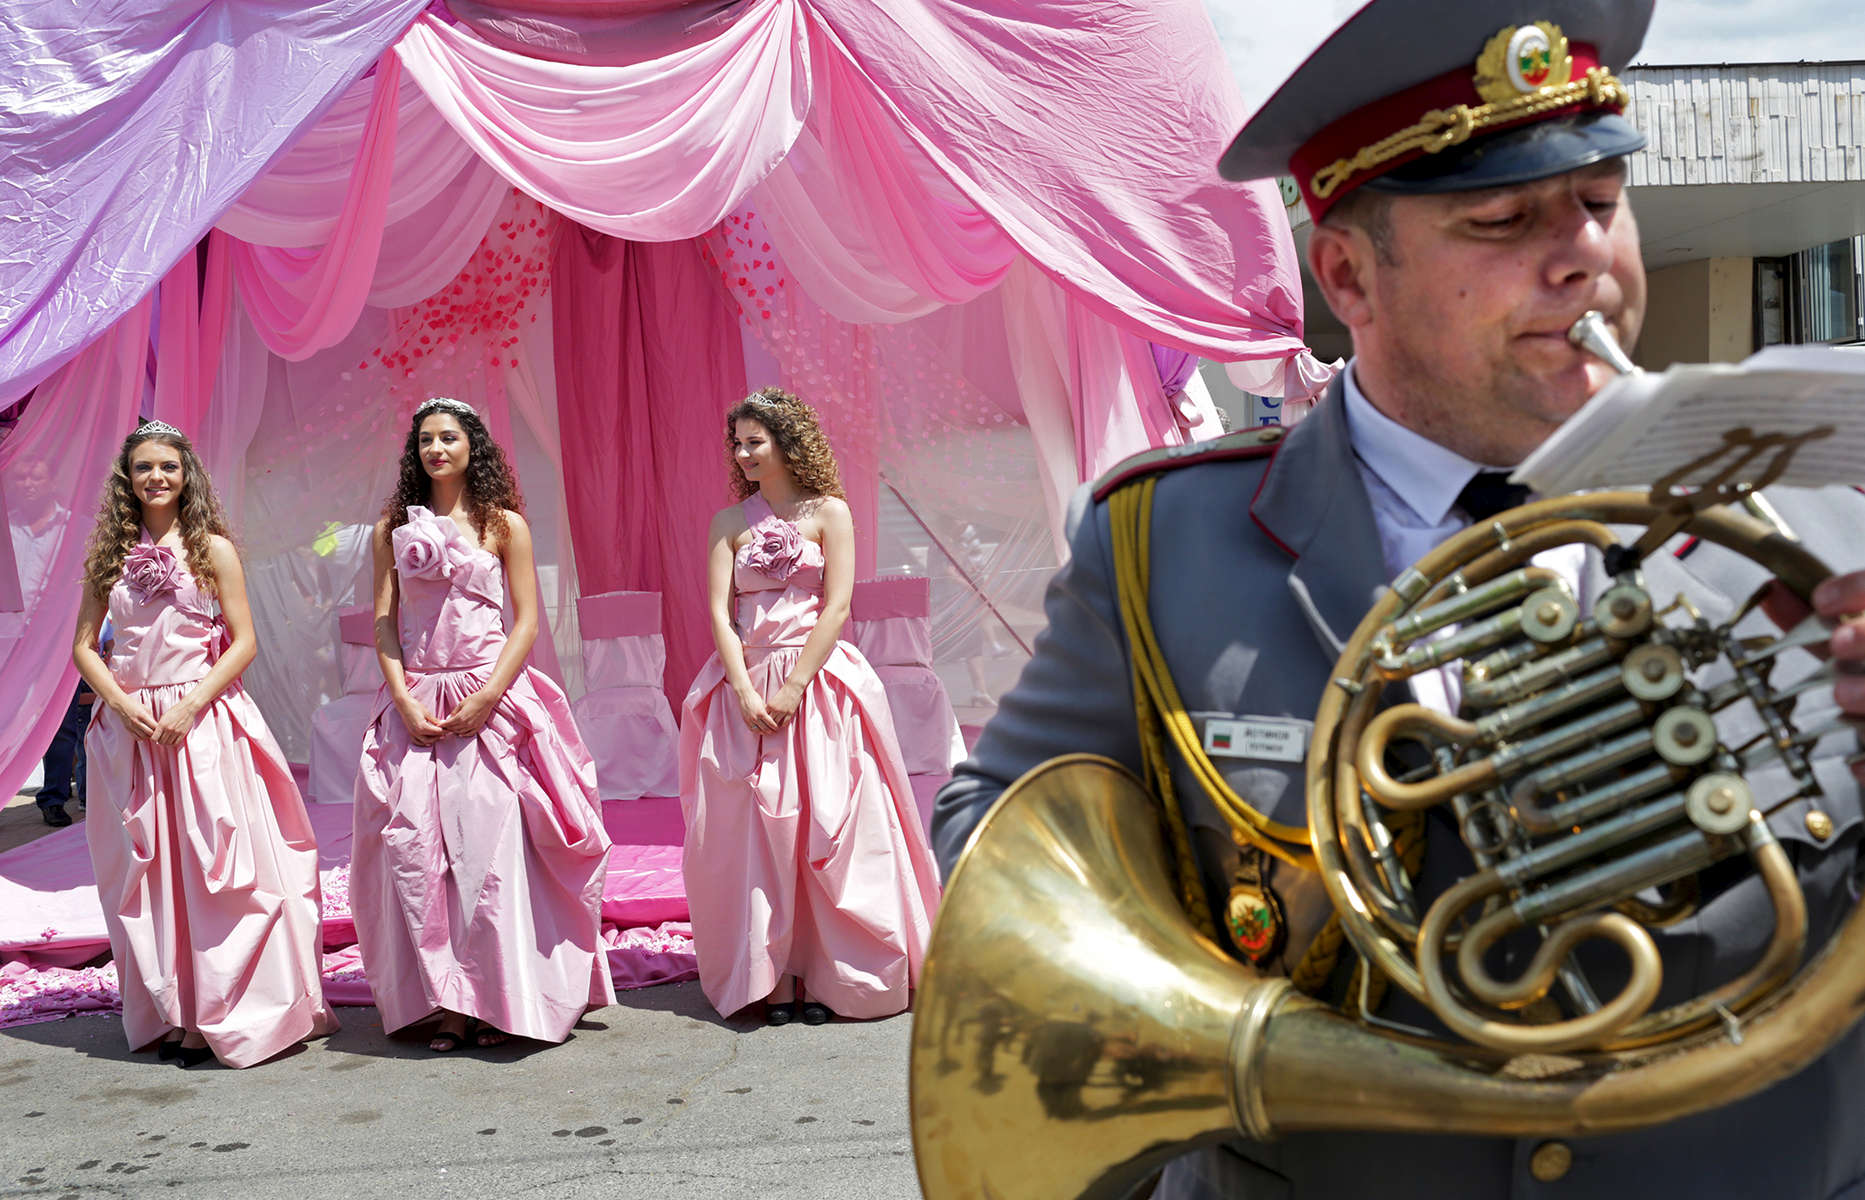 A band plans as Rose Queen Mihaela Hadzhieva, 18 (center,) poses for pictures alongside Bianka Nyagalova,18 (left,) and Elitza Slavcheva, 18 (right,) respectively second and first runners-up for Rose Queen in the Rose Festival in Kazanlak, a town situated in the Rose Valley of Bulgaria, during {quote}The Wisdom of the Rose{quote} parade, on June 03, 2018. The festival, situated in the Rose Valley of Bulgaria, celebrated 115 years in 2018. Photo by: Yana Paskova for National Geographic Traveler